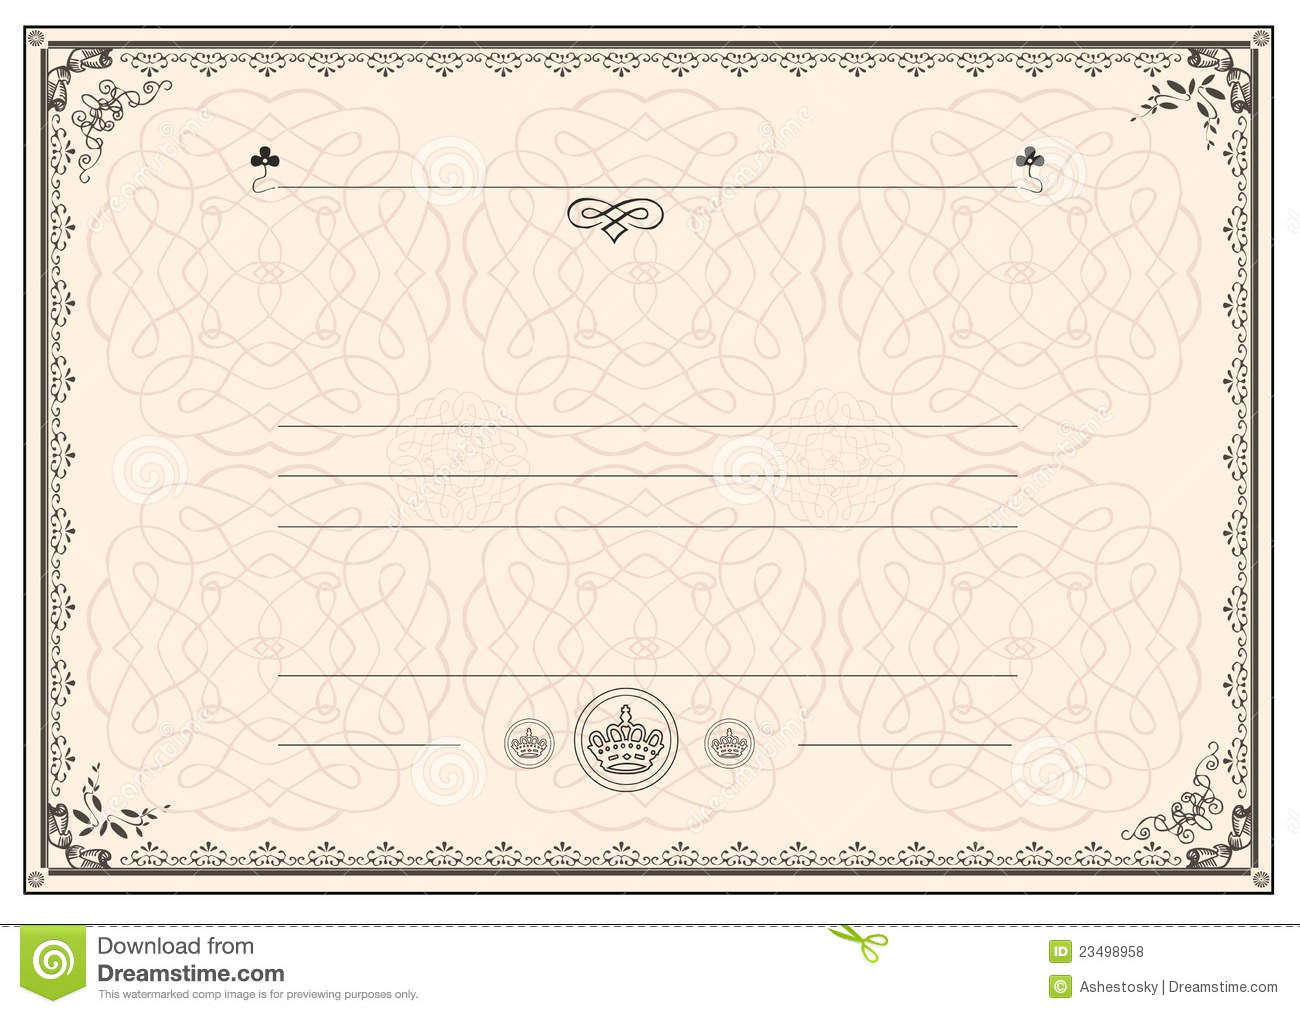 Certificate Frame Border Royalty Free Photos Image 23498958 – Certificate Borders Free Download